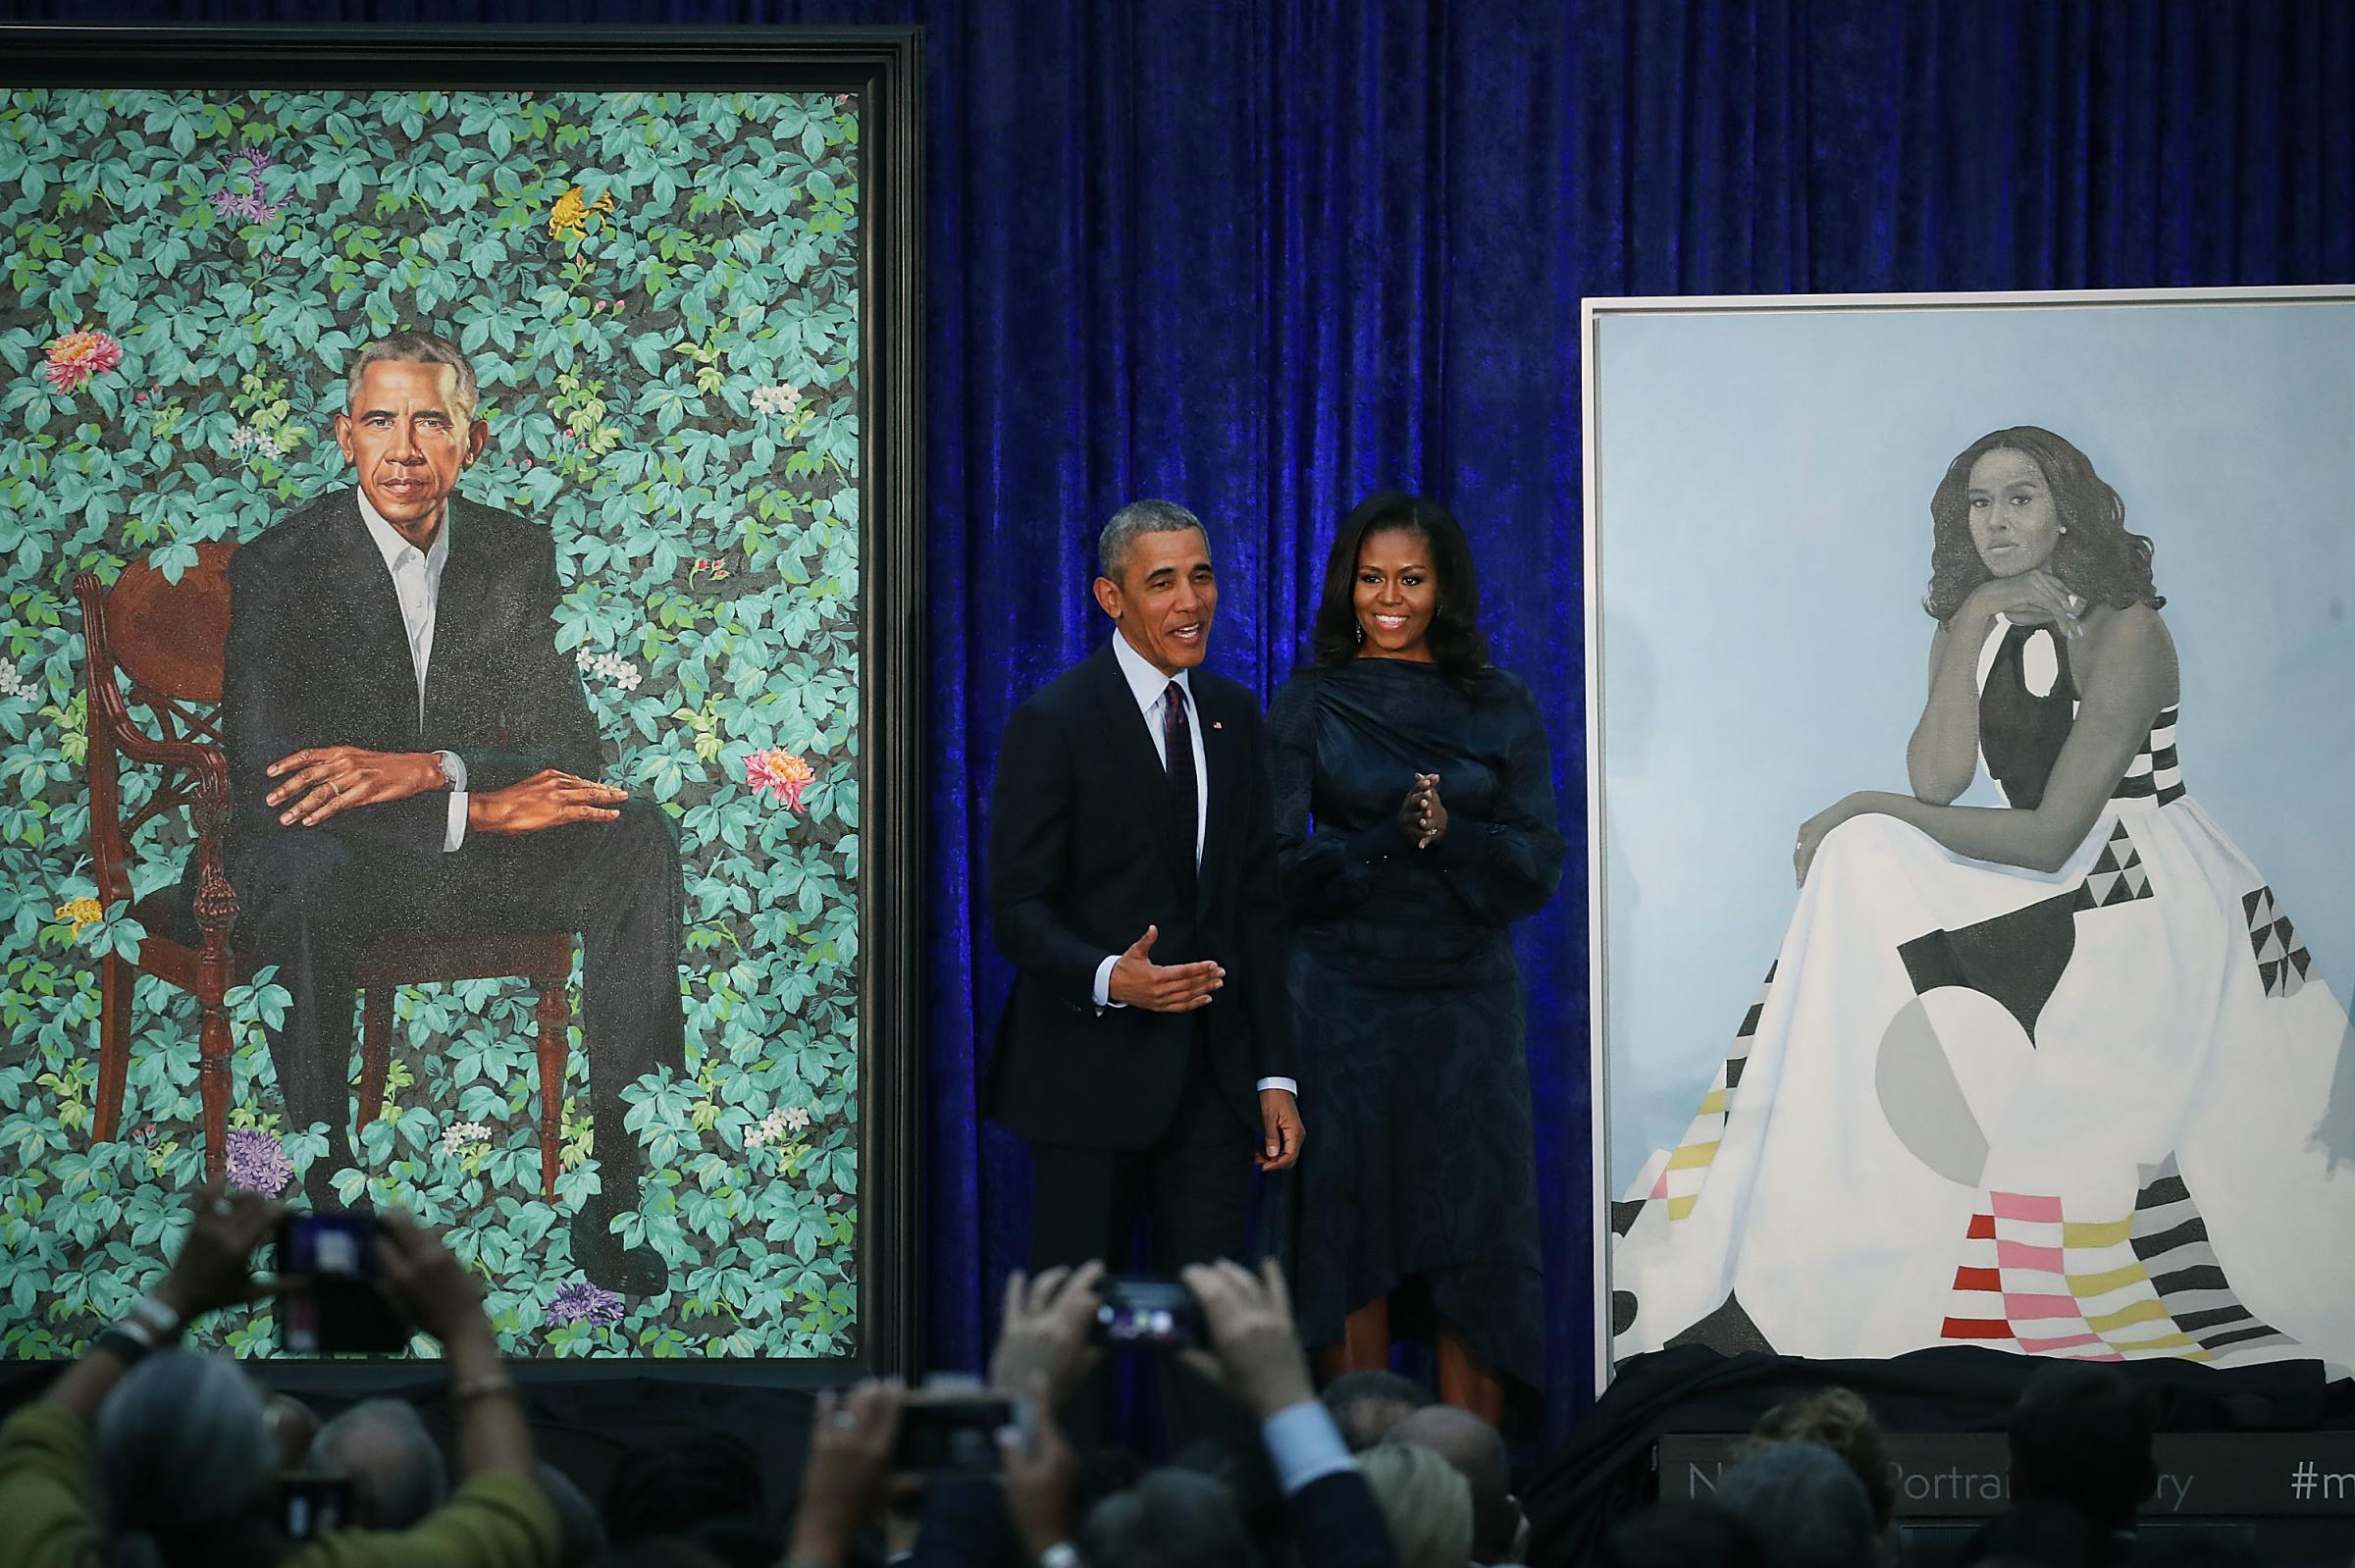 Obamas' Portraits Going On Tour Next Year